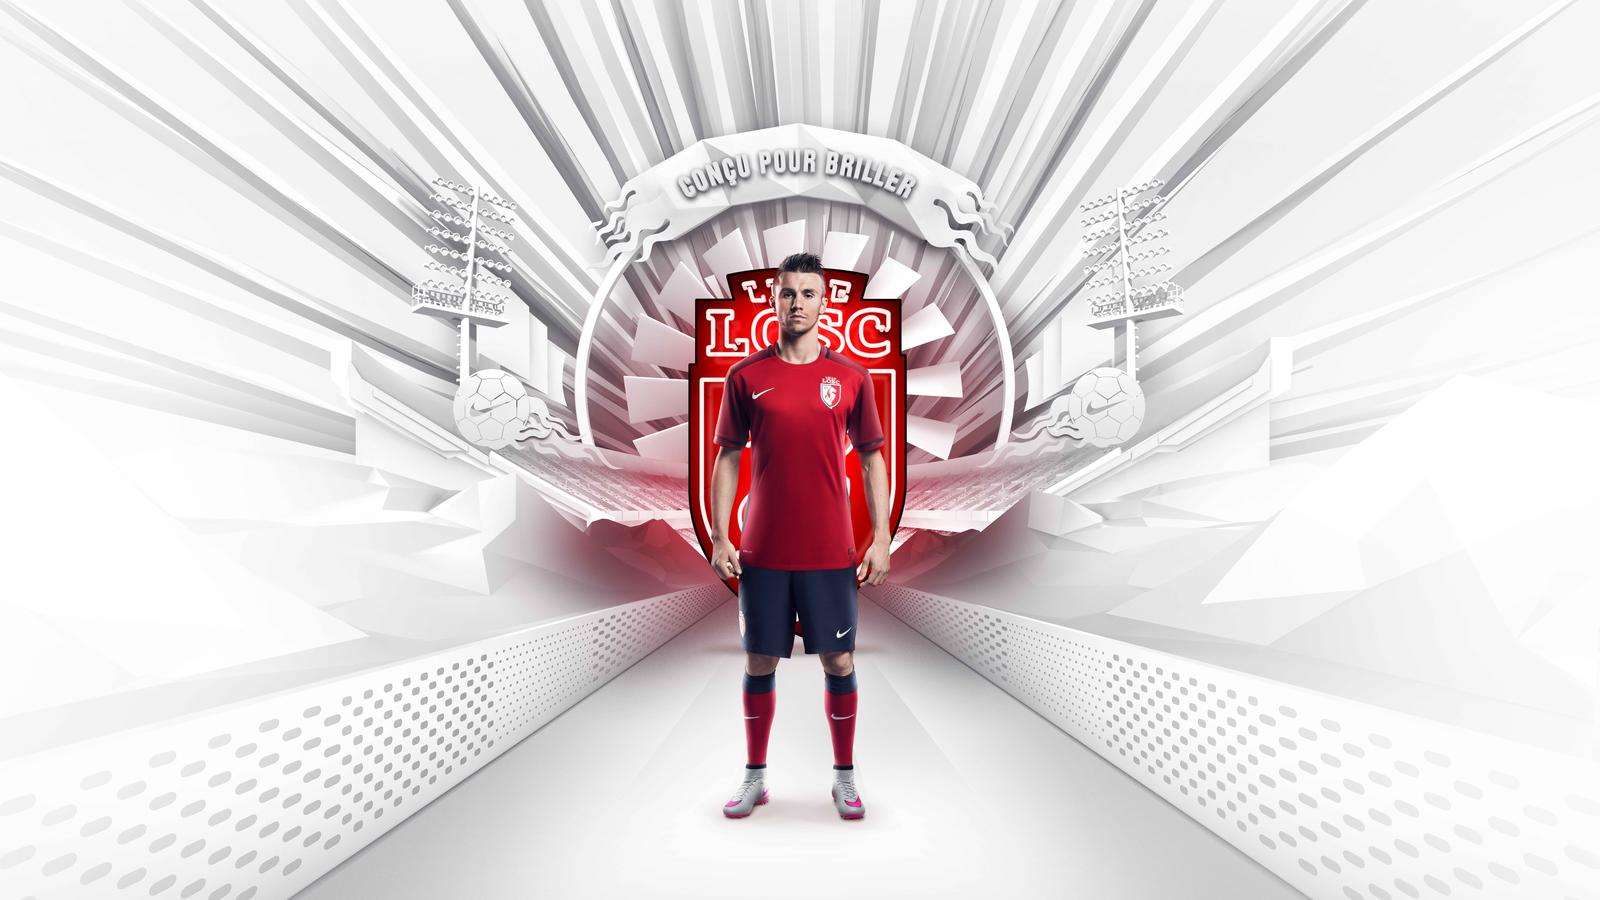 Cool Wallpaper Nike Aesthetic - Fa15_FB_WE_FB_CLUBKIT_Lille_Corchia_HFR2-003_hd_1600  Graphic_53179.jpg?1435079767